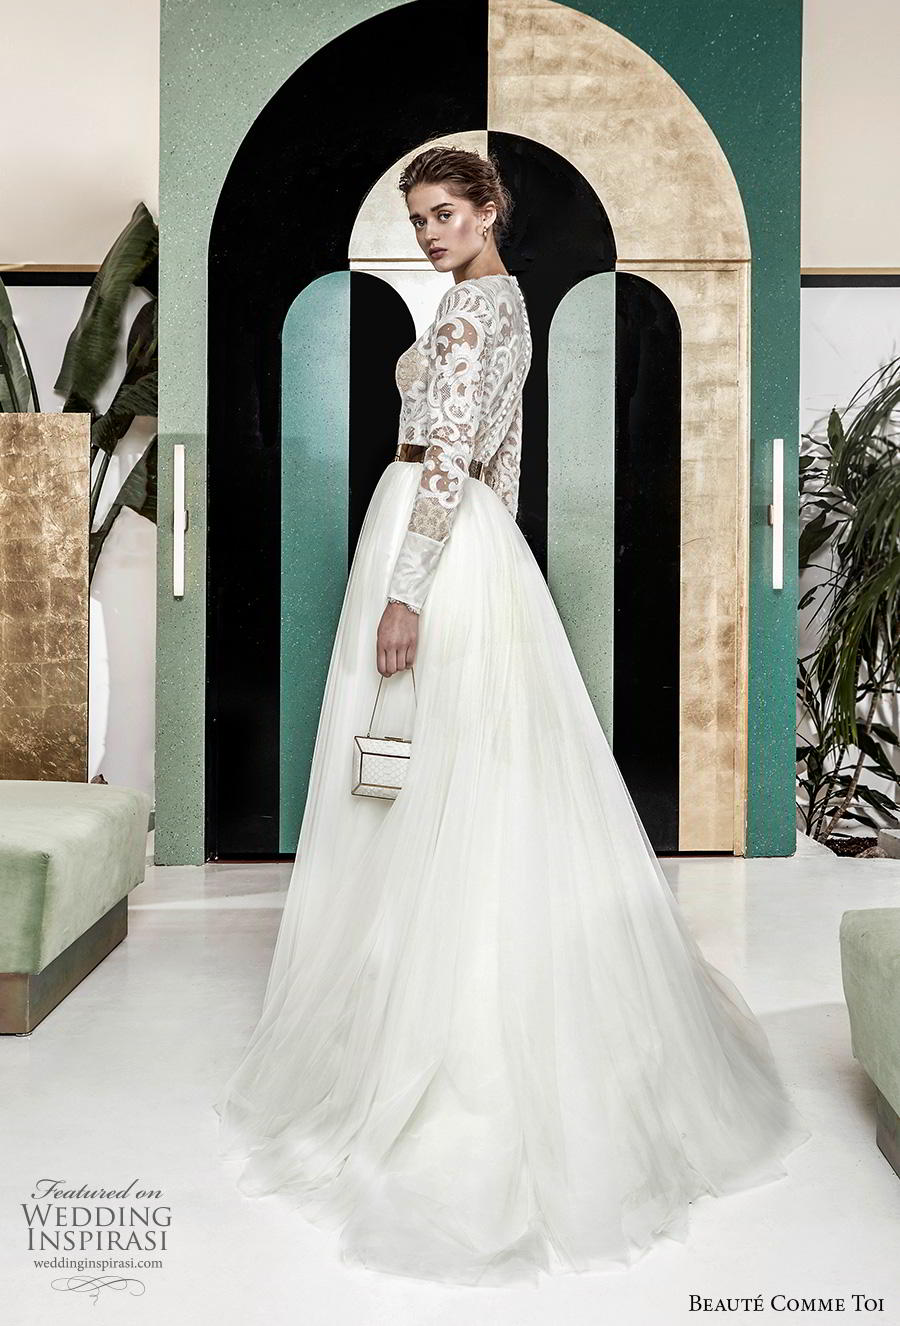 beaute comme toi 2019 bridal long sleeves jewel neck heavily embellished bodice modest glamorous classy a  line wedding dress lace button back chapel train (aude) bv